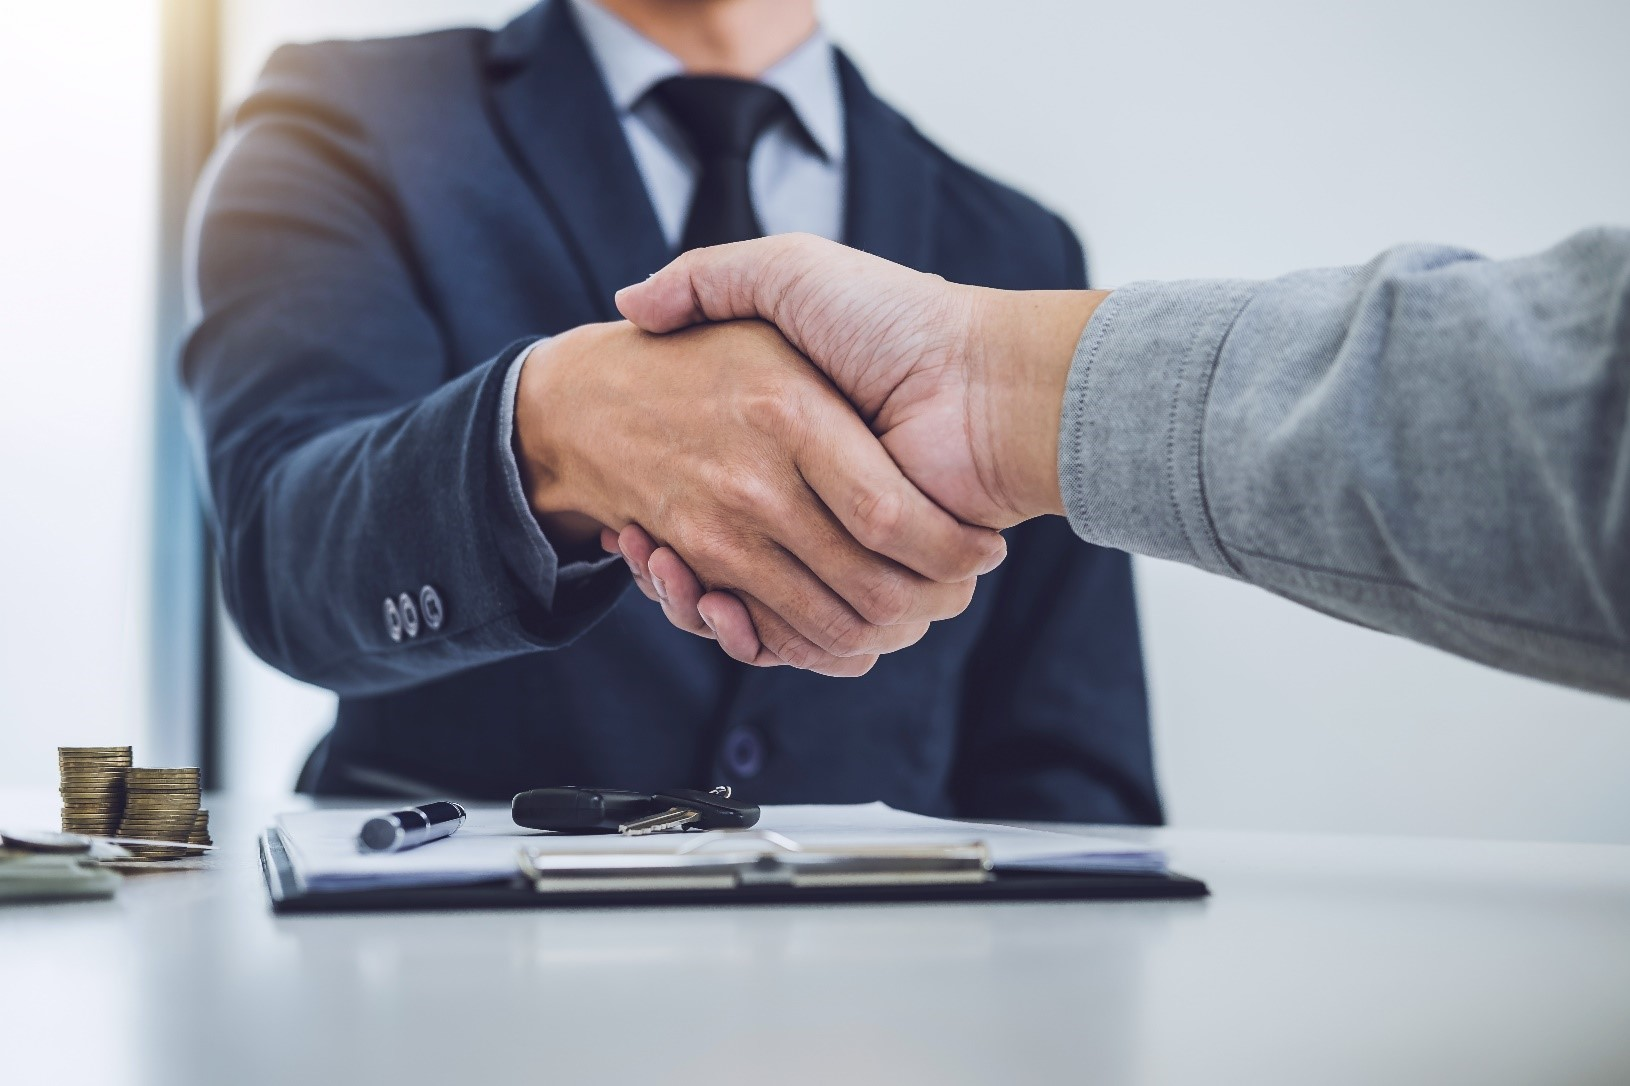 Borrower and lender shake hands after finalising a car loan